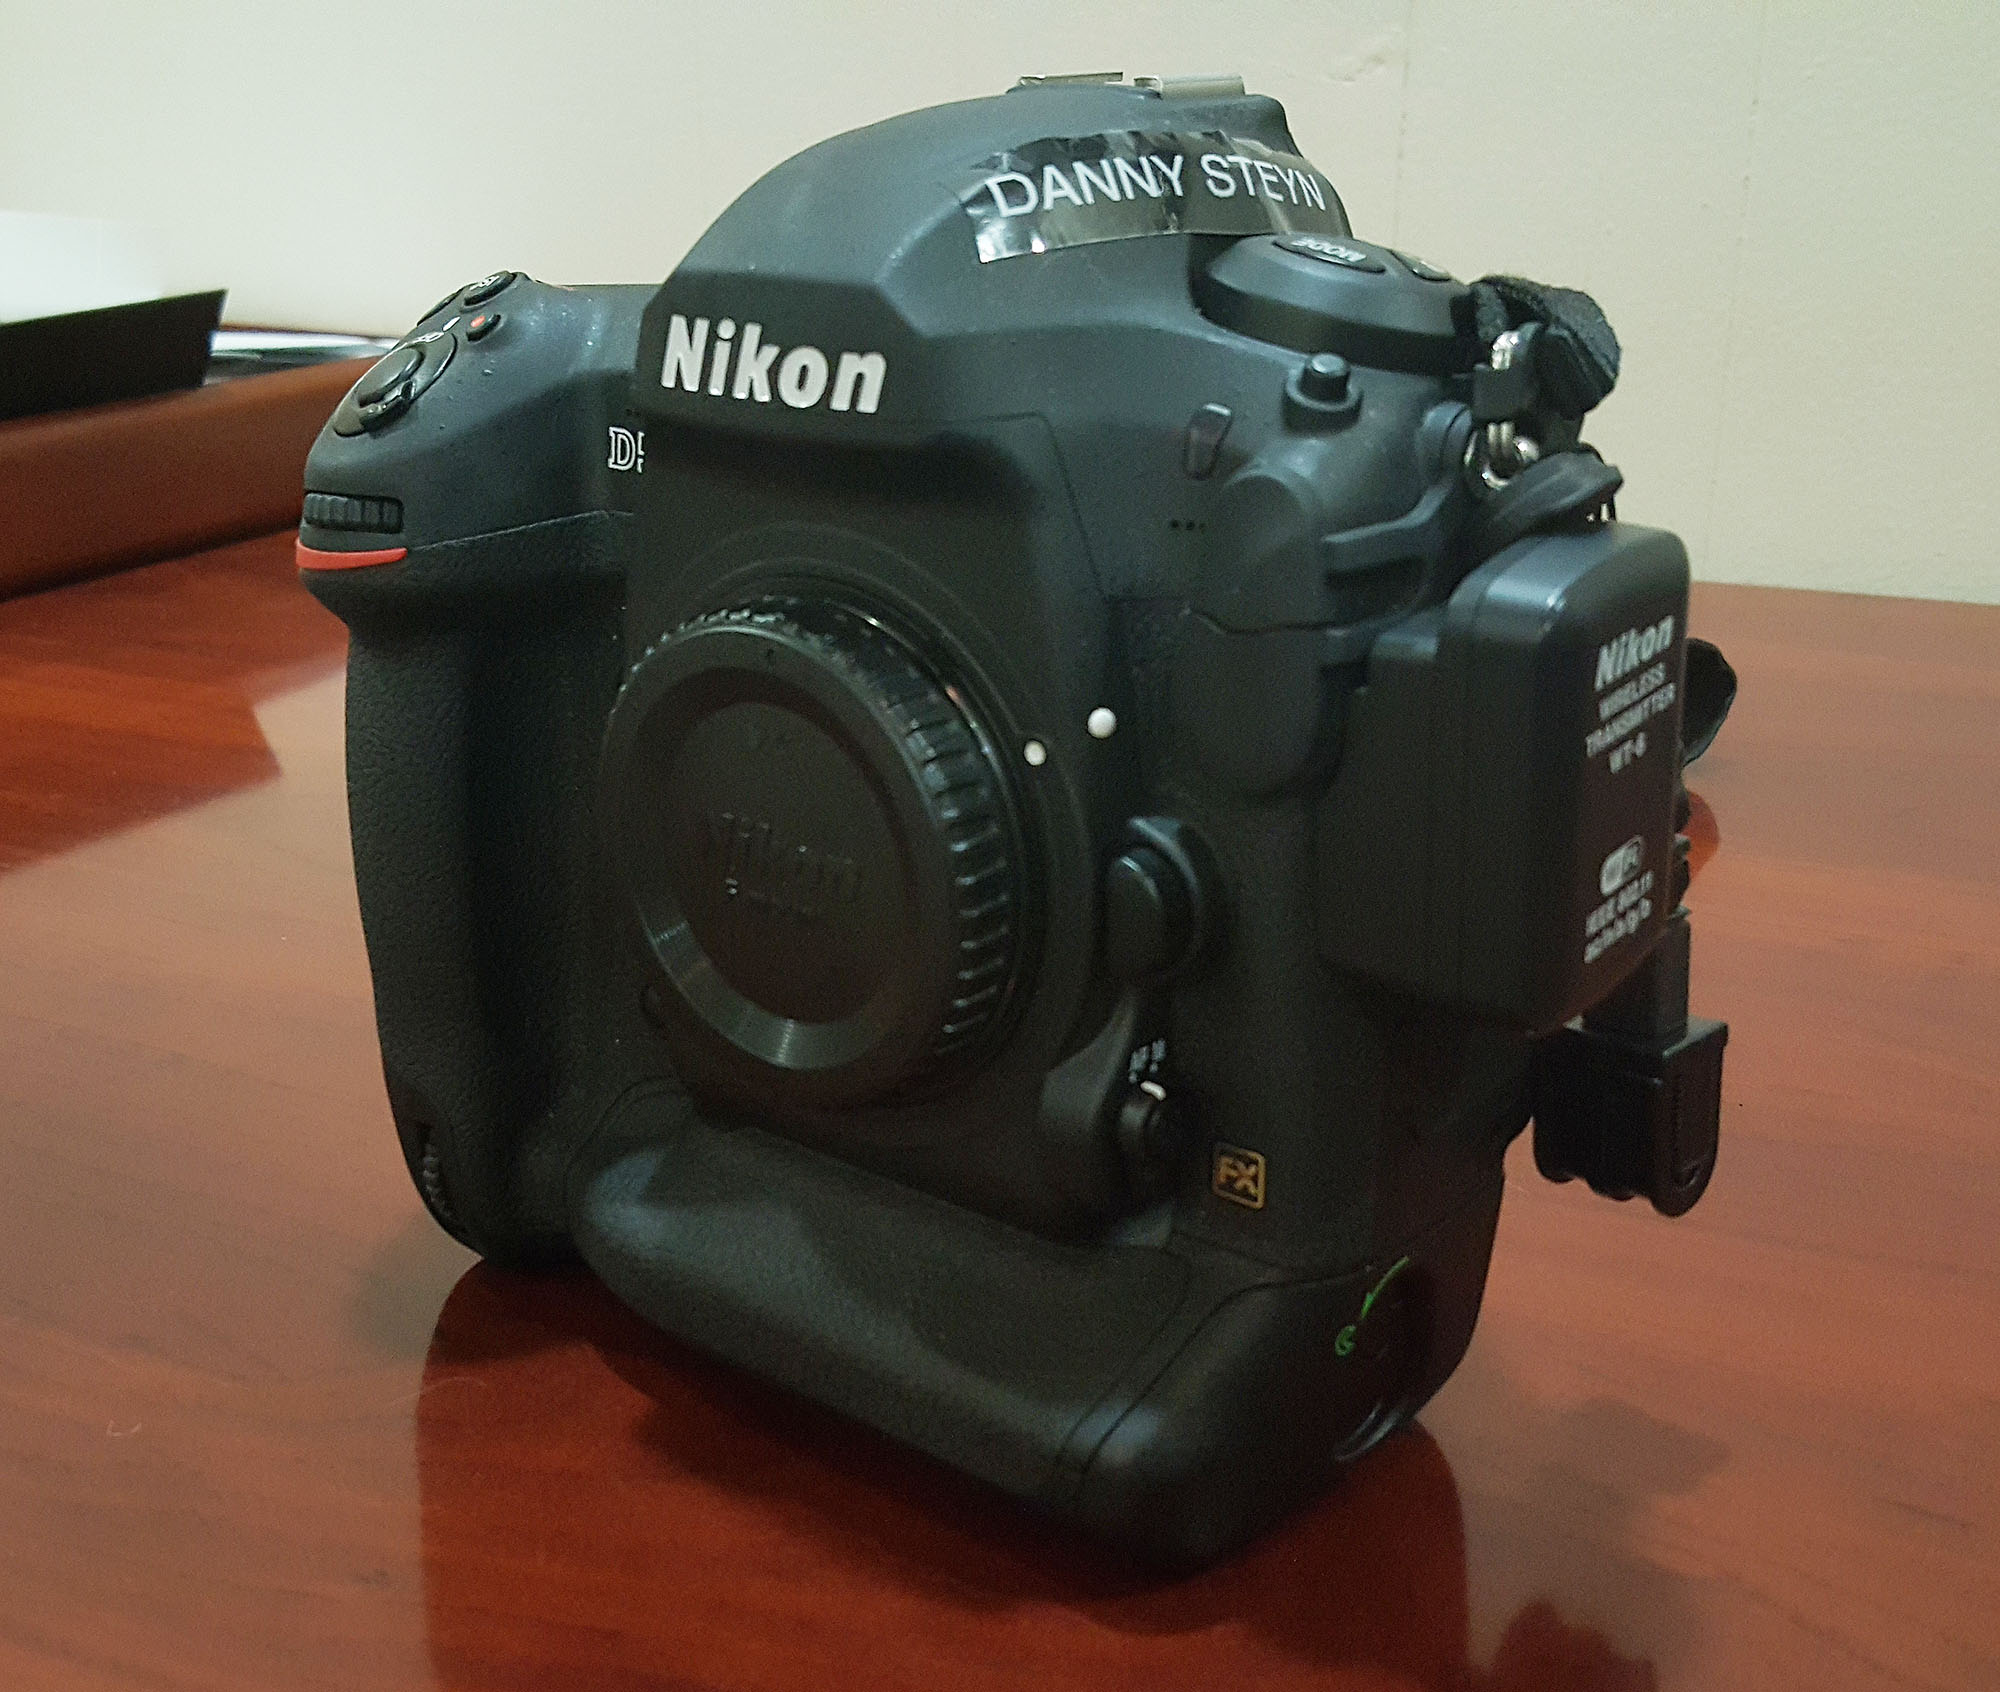 Previewing of Images on Tablets using Wireless Transmitters. Nikin D5 with Nikon WT-6A